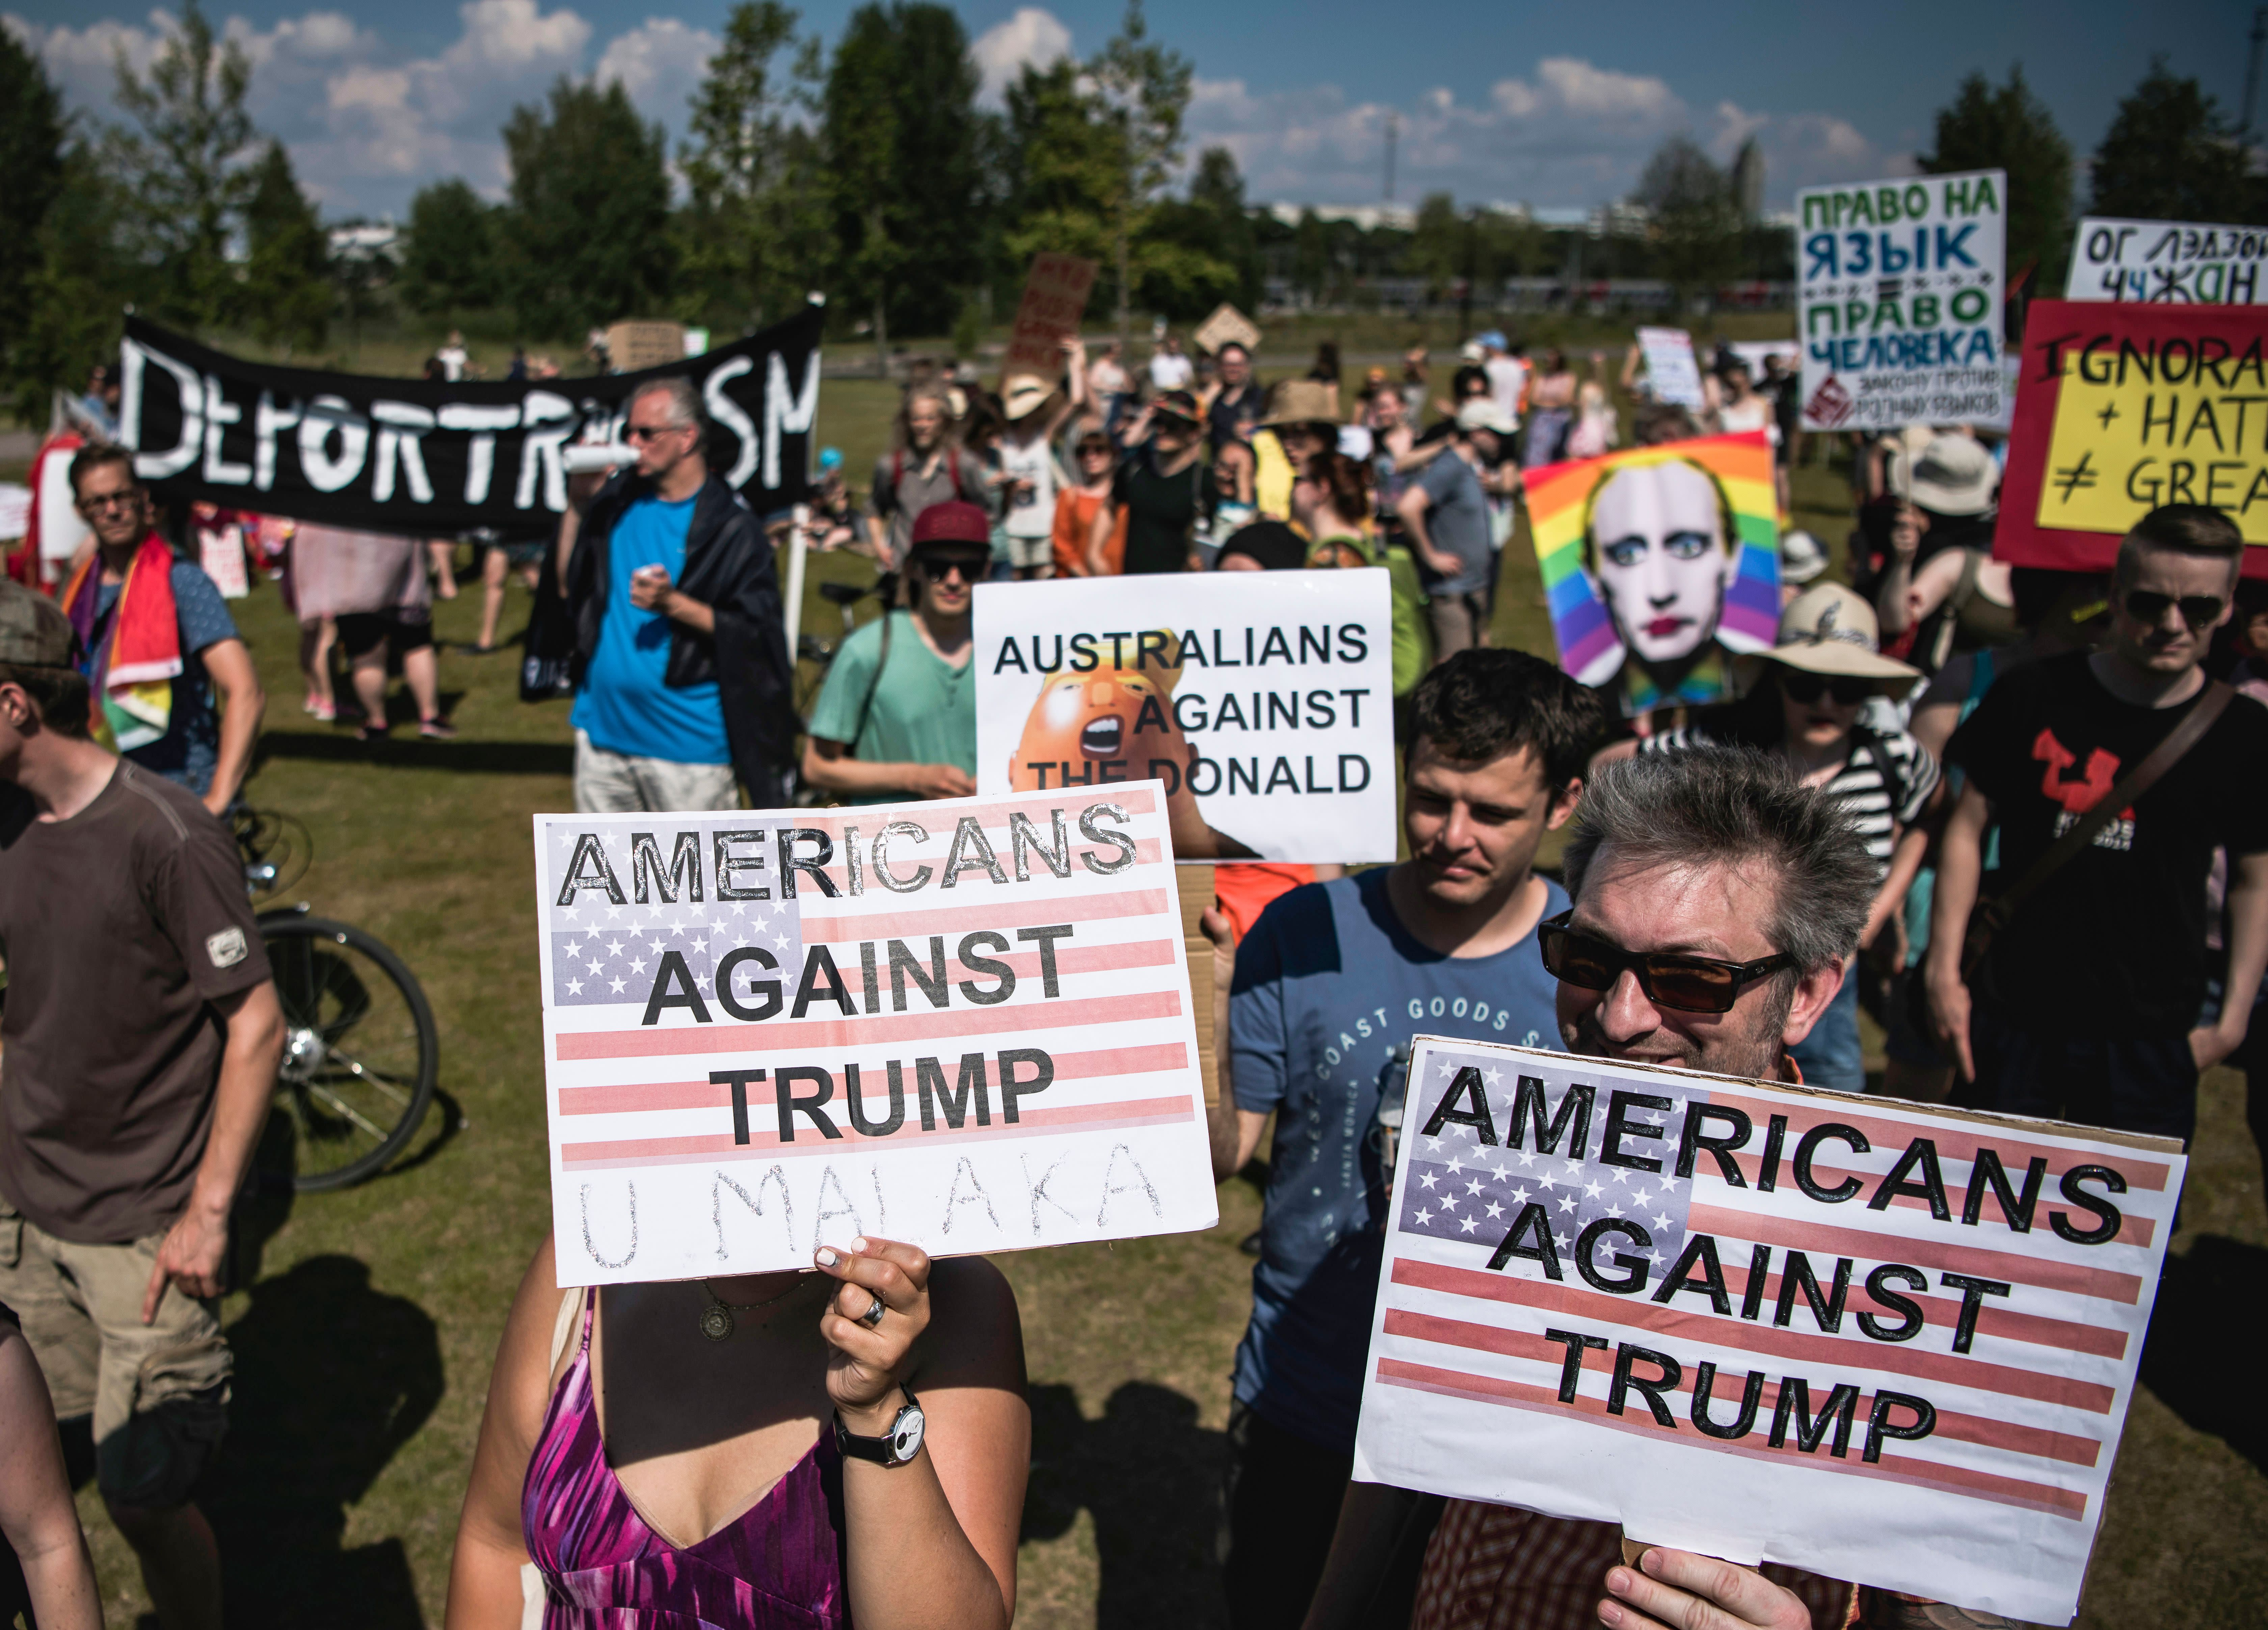 """<p>Protesters take part in the so-called """"Helsinki against Trump and Putin"""" demonstration on the sidelines of the meeting between US President Donald Trump and Russian counterpart Vladimir Putin on July 16, 2018, in Helsinki, Finland. (Photo: Jonathan Nackstrand/AFP/Getty Images) </p>"""